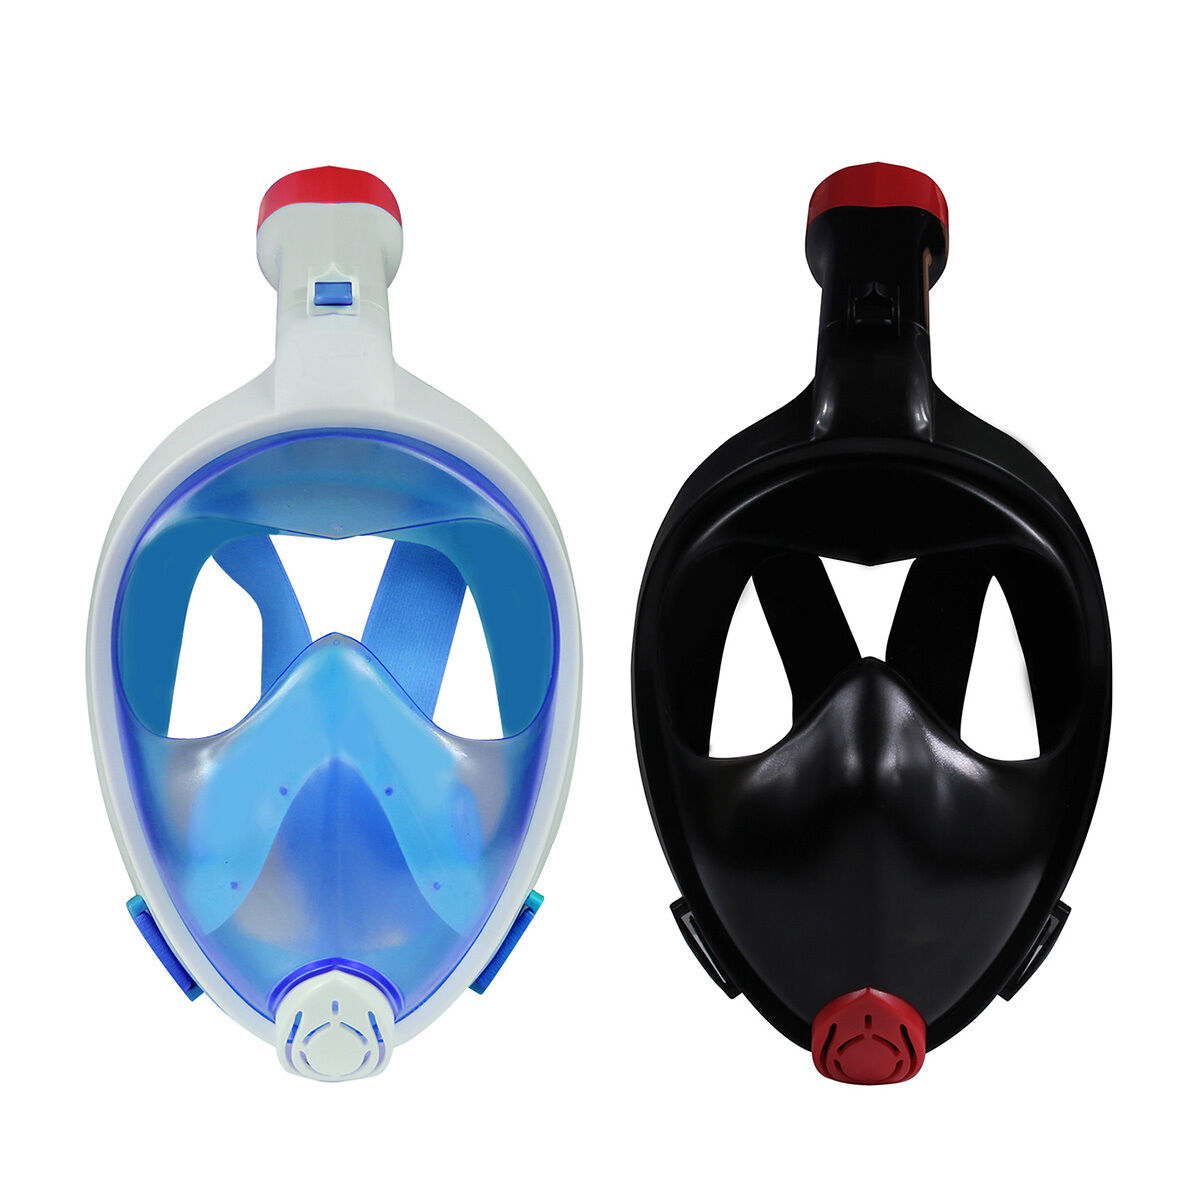 Seaview 180° Snorkel Mask Panoramic Full Face Design for GoPro Compatible Snorke